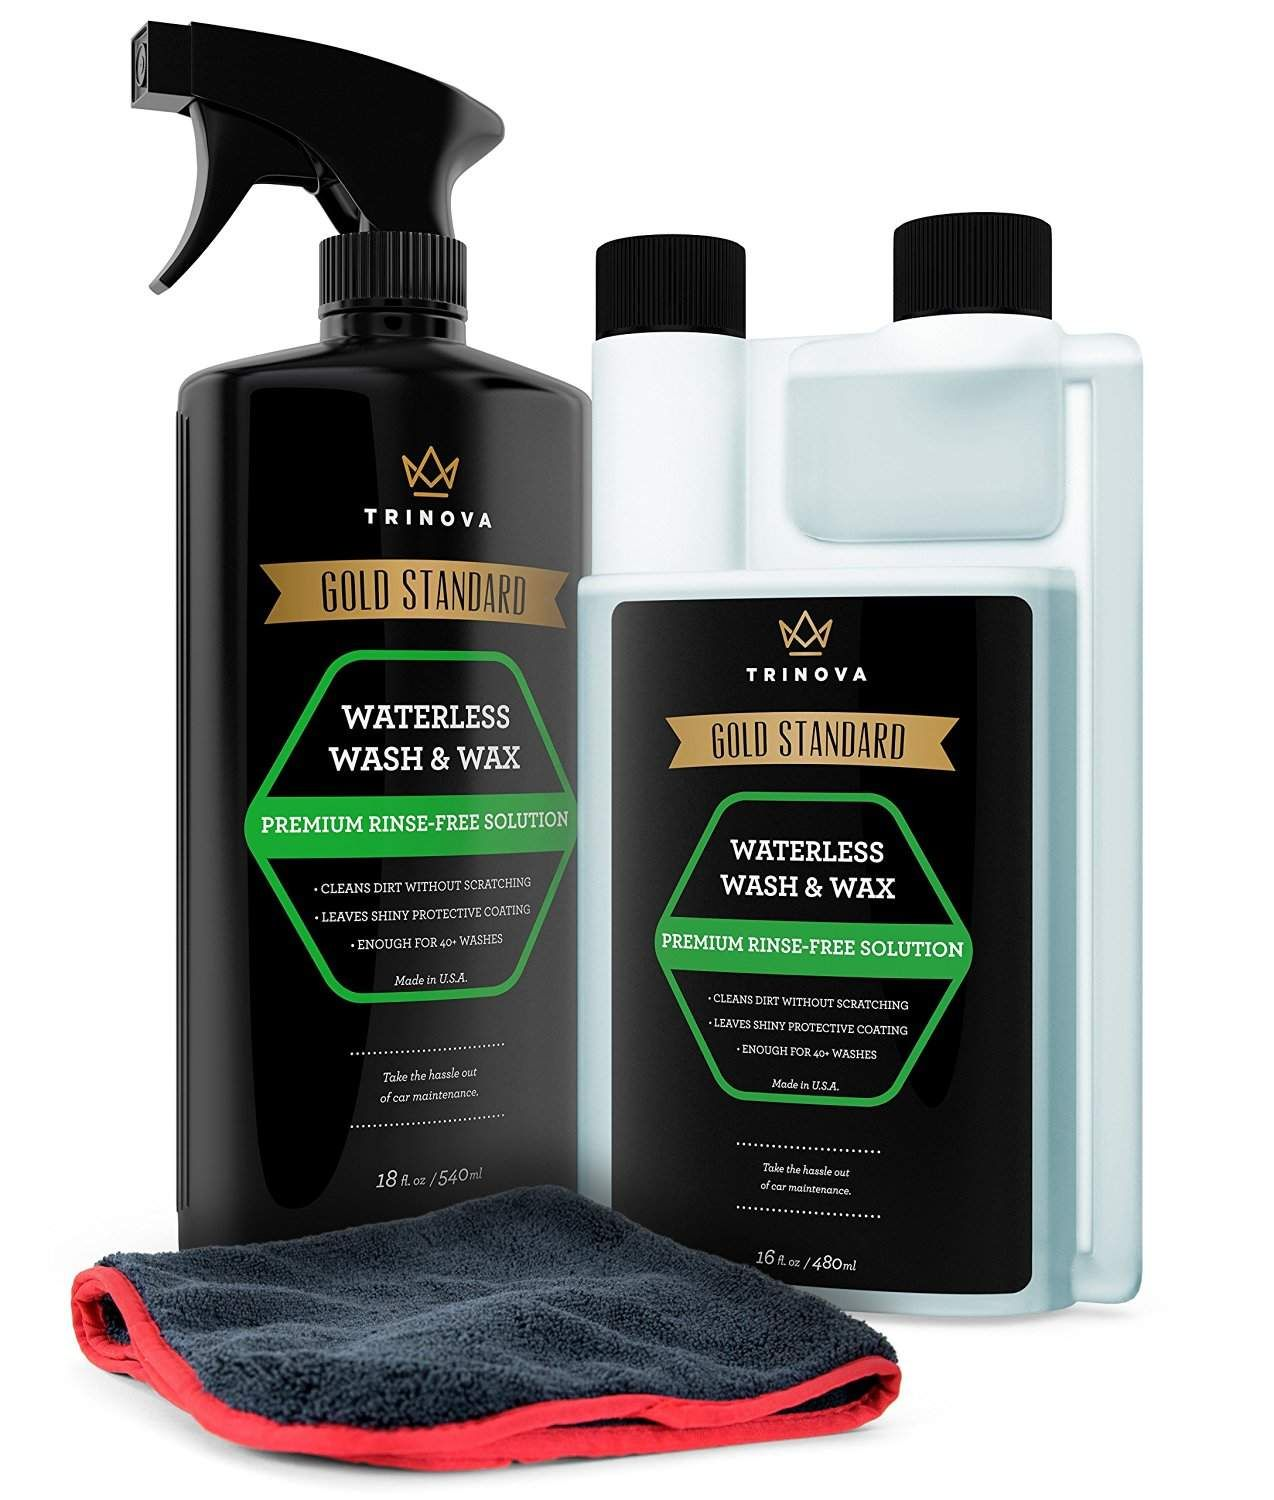 Best Car Wax For Black Cars >> Best Car Wax For Black Cars July 2018 Buyer S Guide News To Go 2